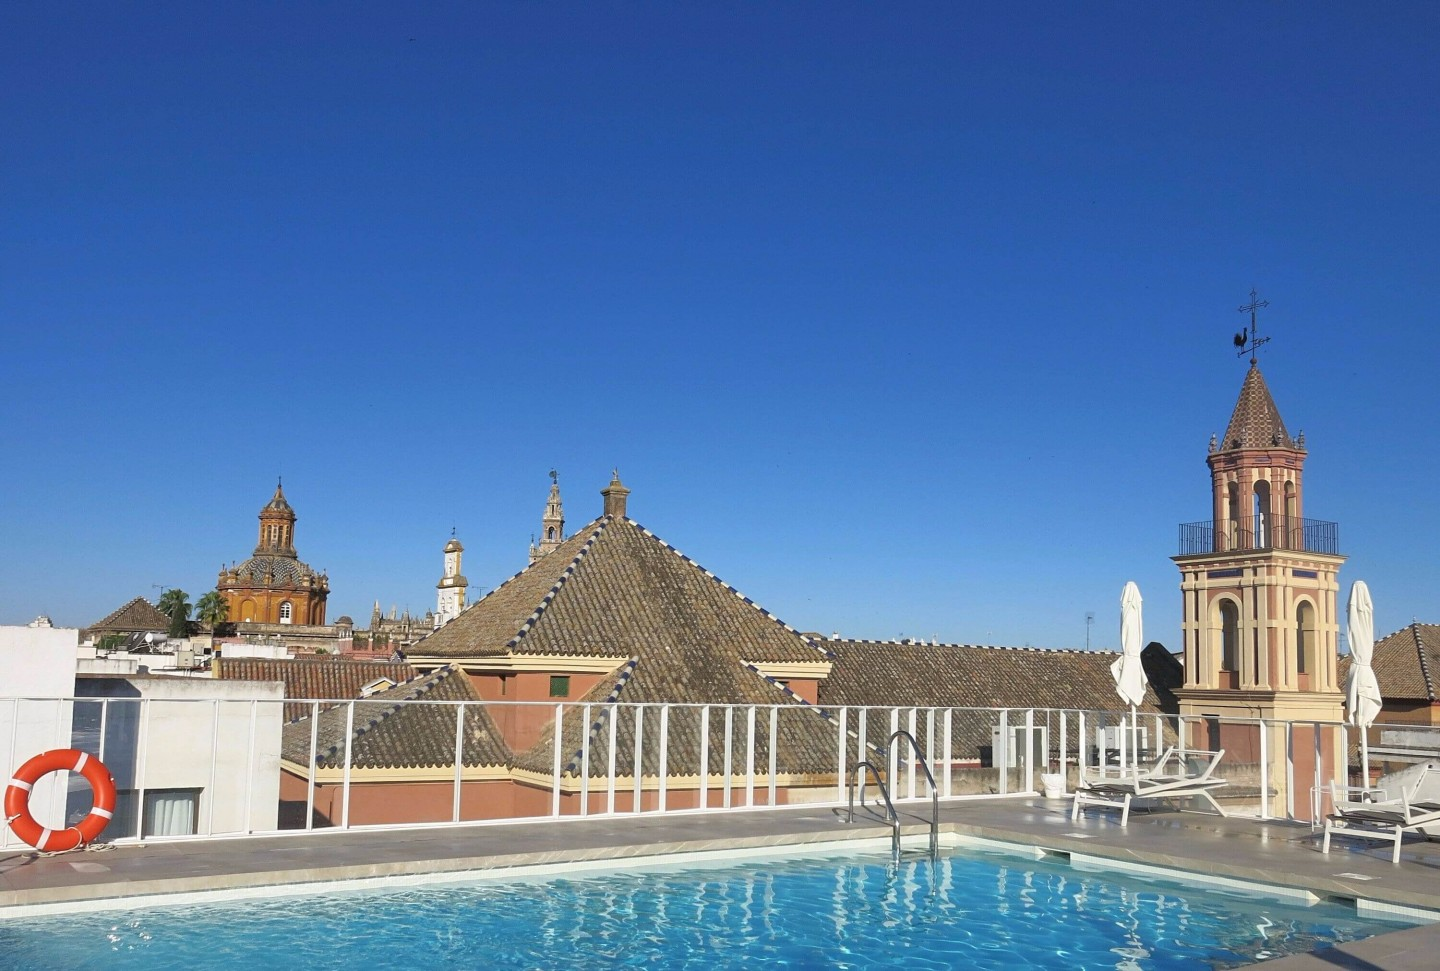 Hotel Fernando III is in the heart of the old town of Seville. It has an amazing rooftop pool!